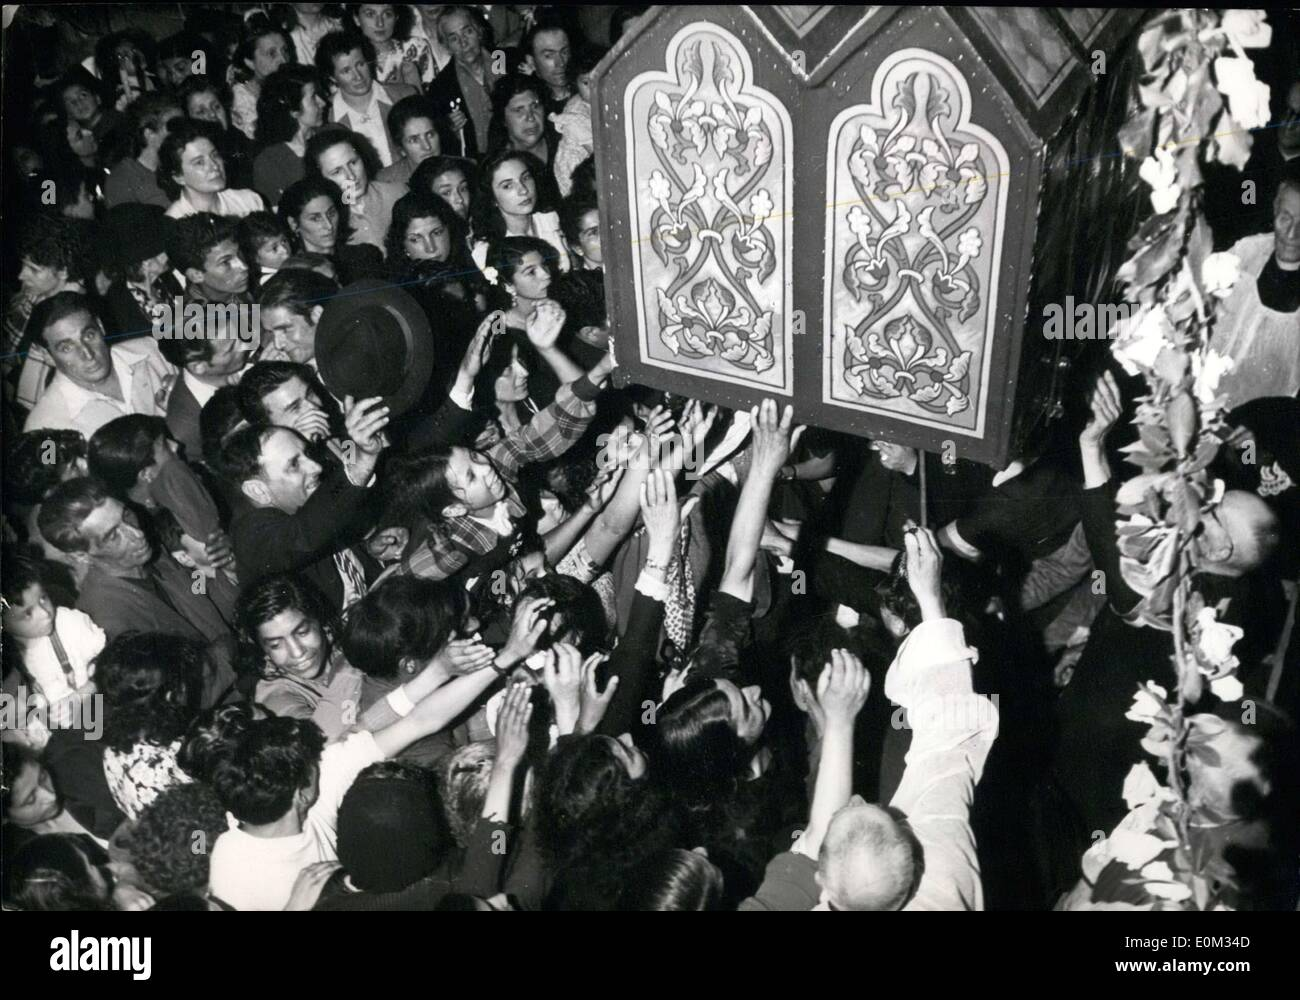 May 26, 1953 - Relics of Sara the Bohemian, Marie-Jacobee, and Marie Salomee APRESS.co - Stock Image